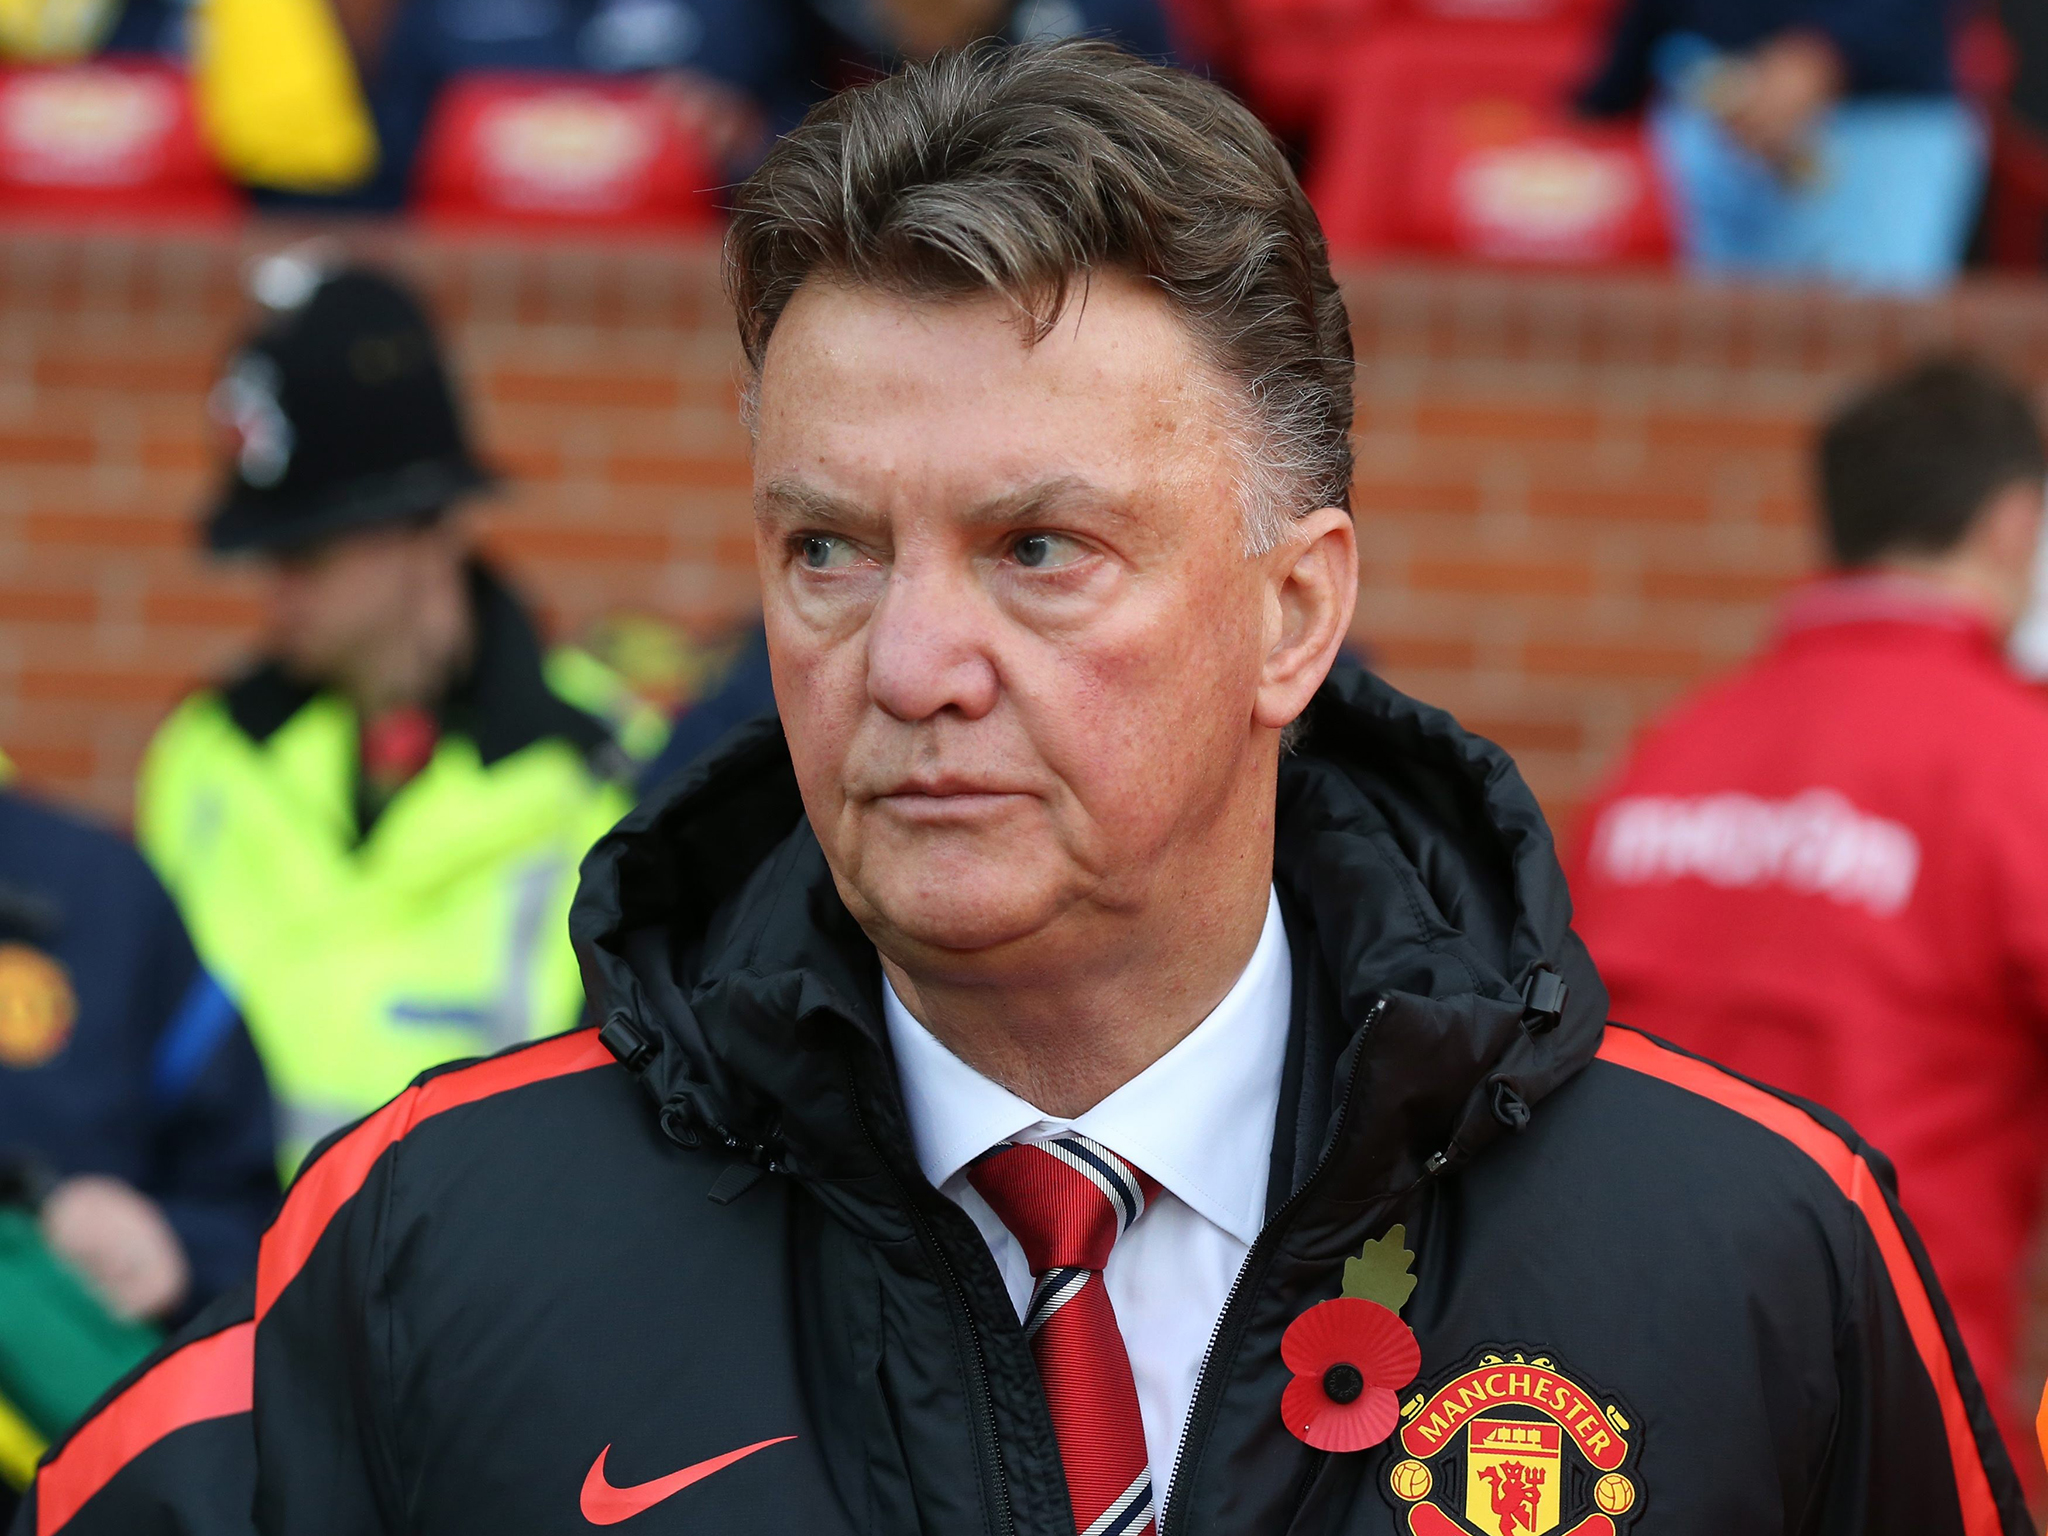 Van Gaal dispara contra diretoria do Manchester United